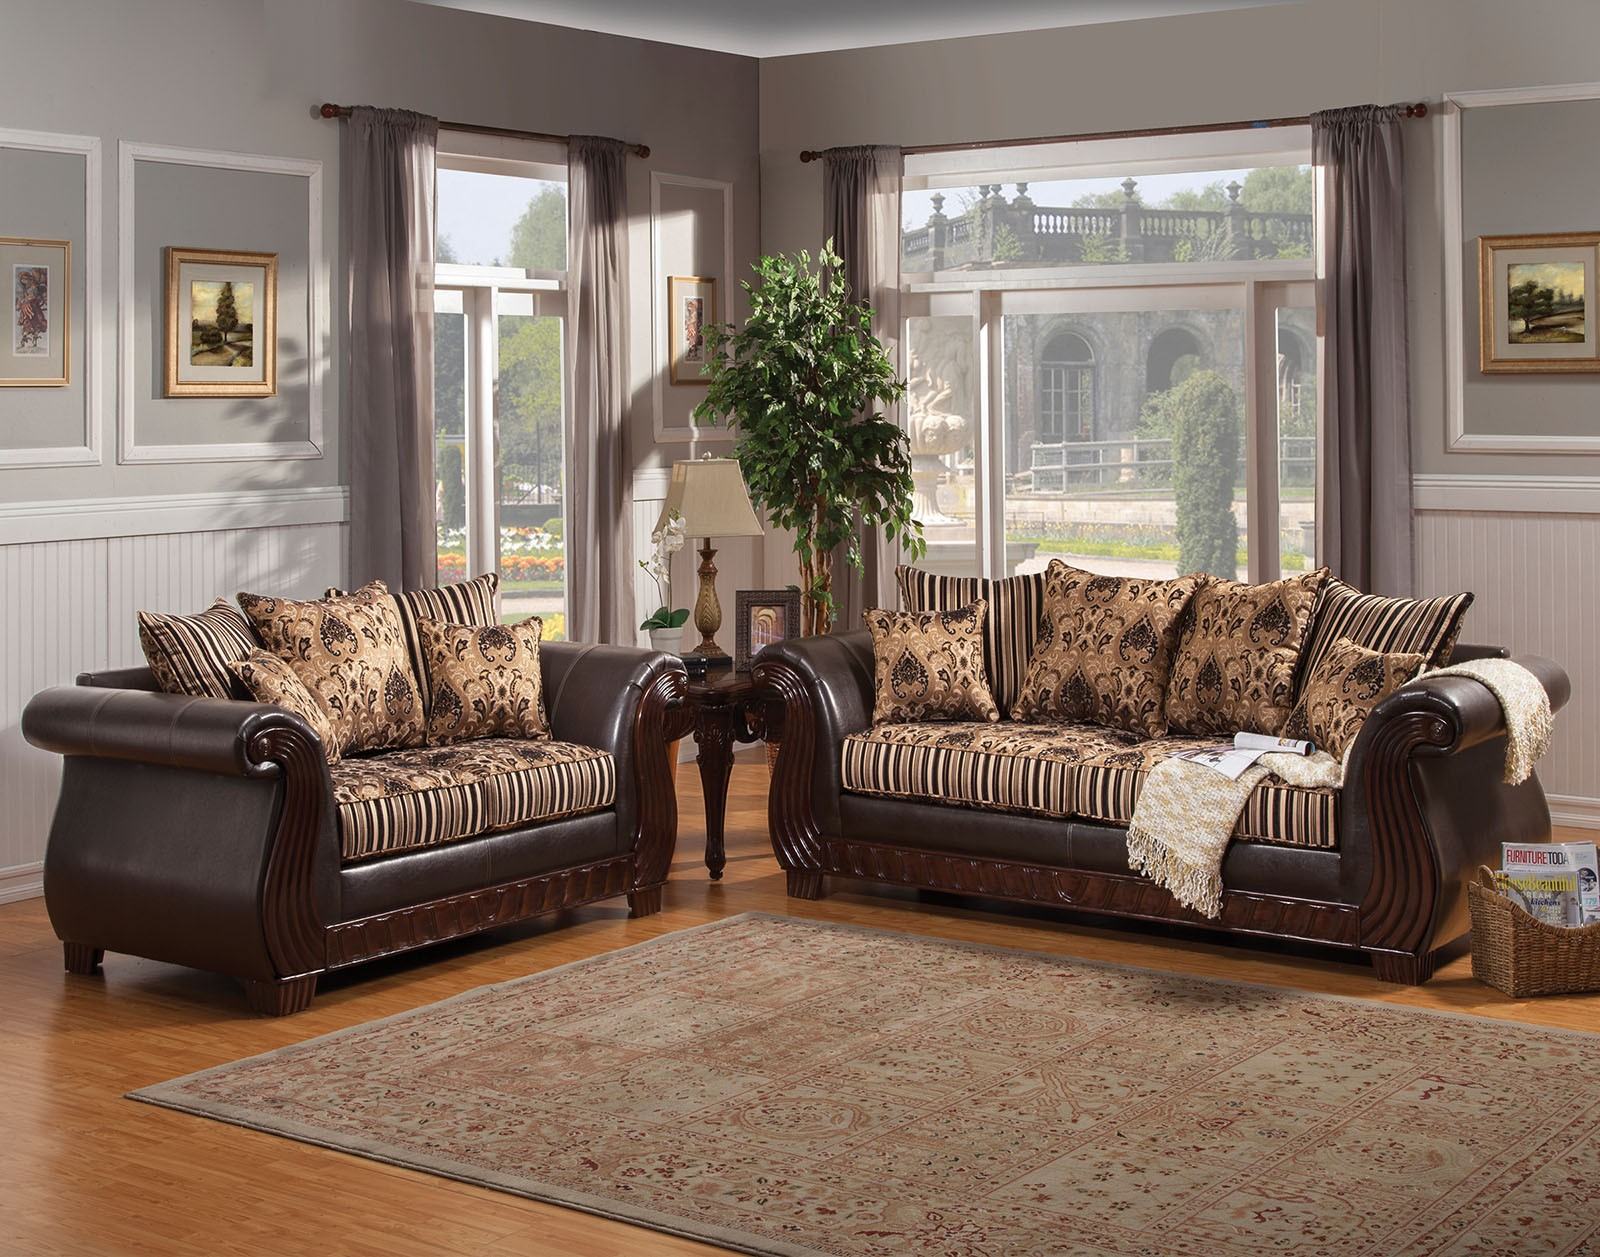 Rutherford Black Living Room Set From Furniture Of America Coleman Furniture